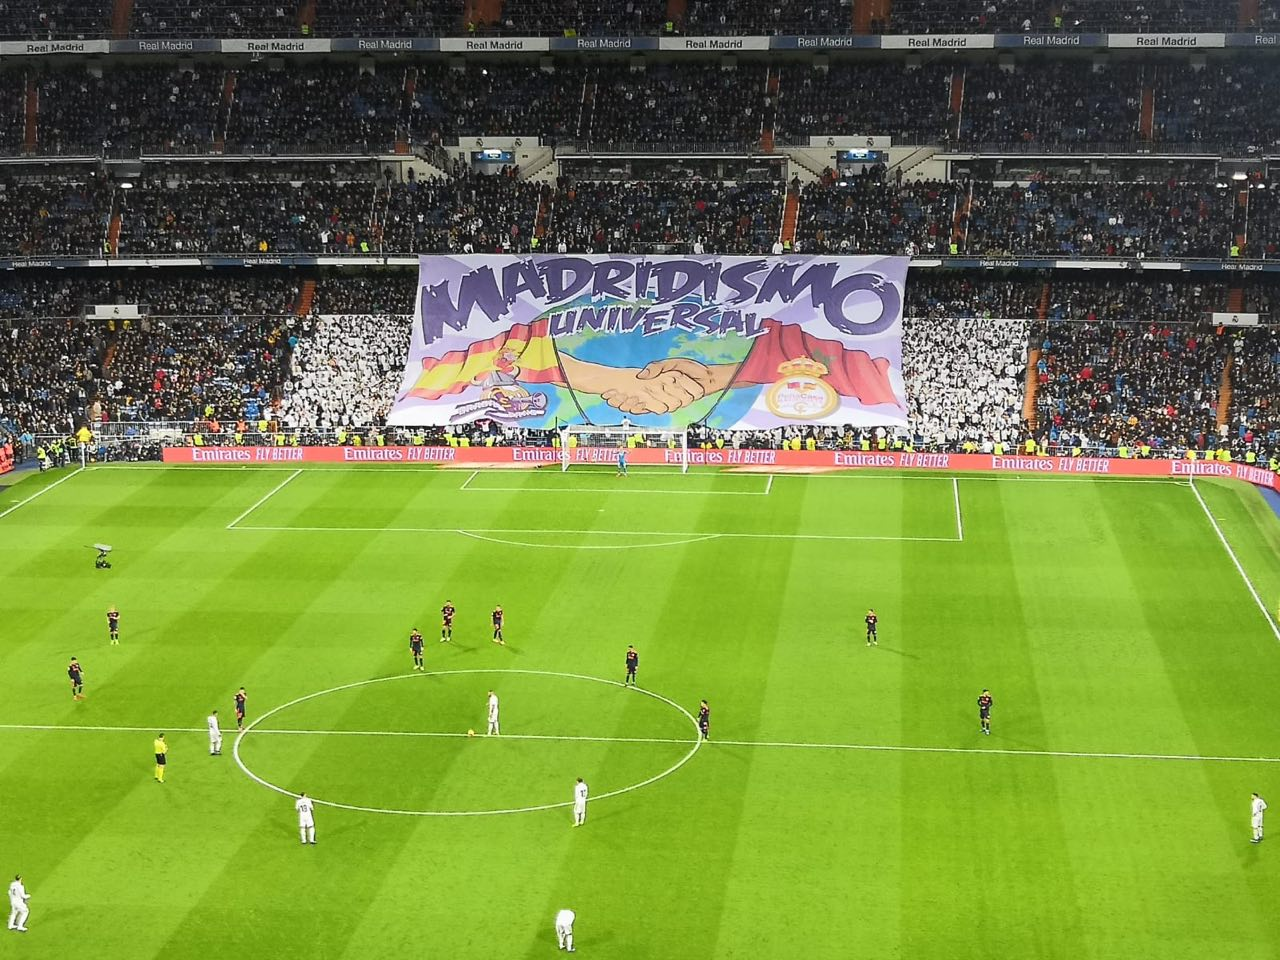 Madrid Spain April 22nd 2014 Thousands   Sports/Recreation Stock Image  277338782